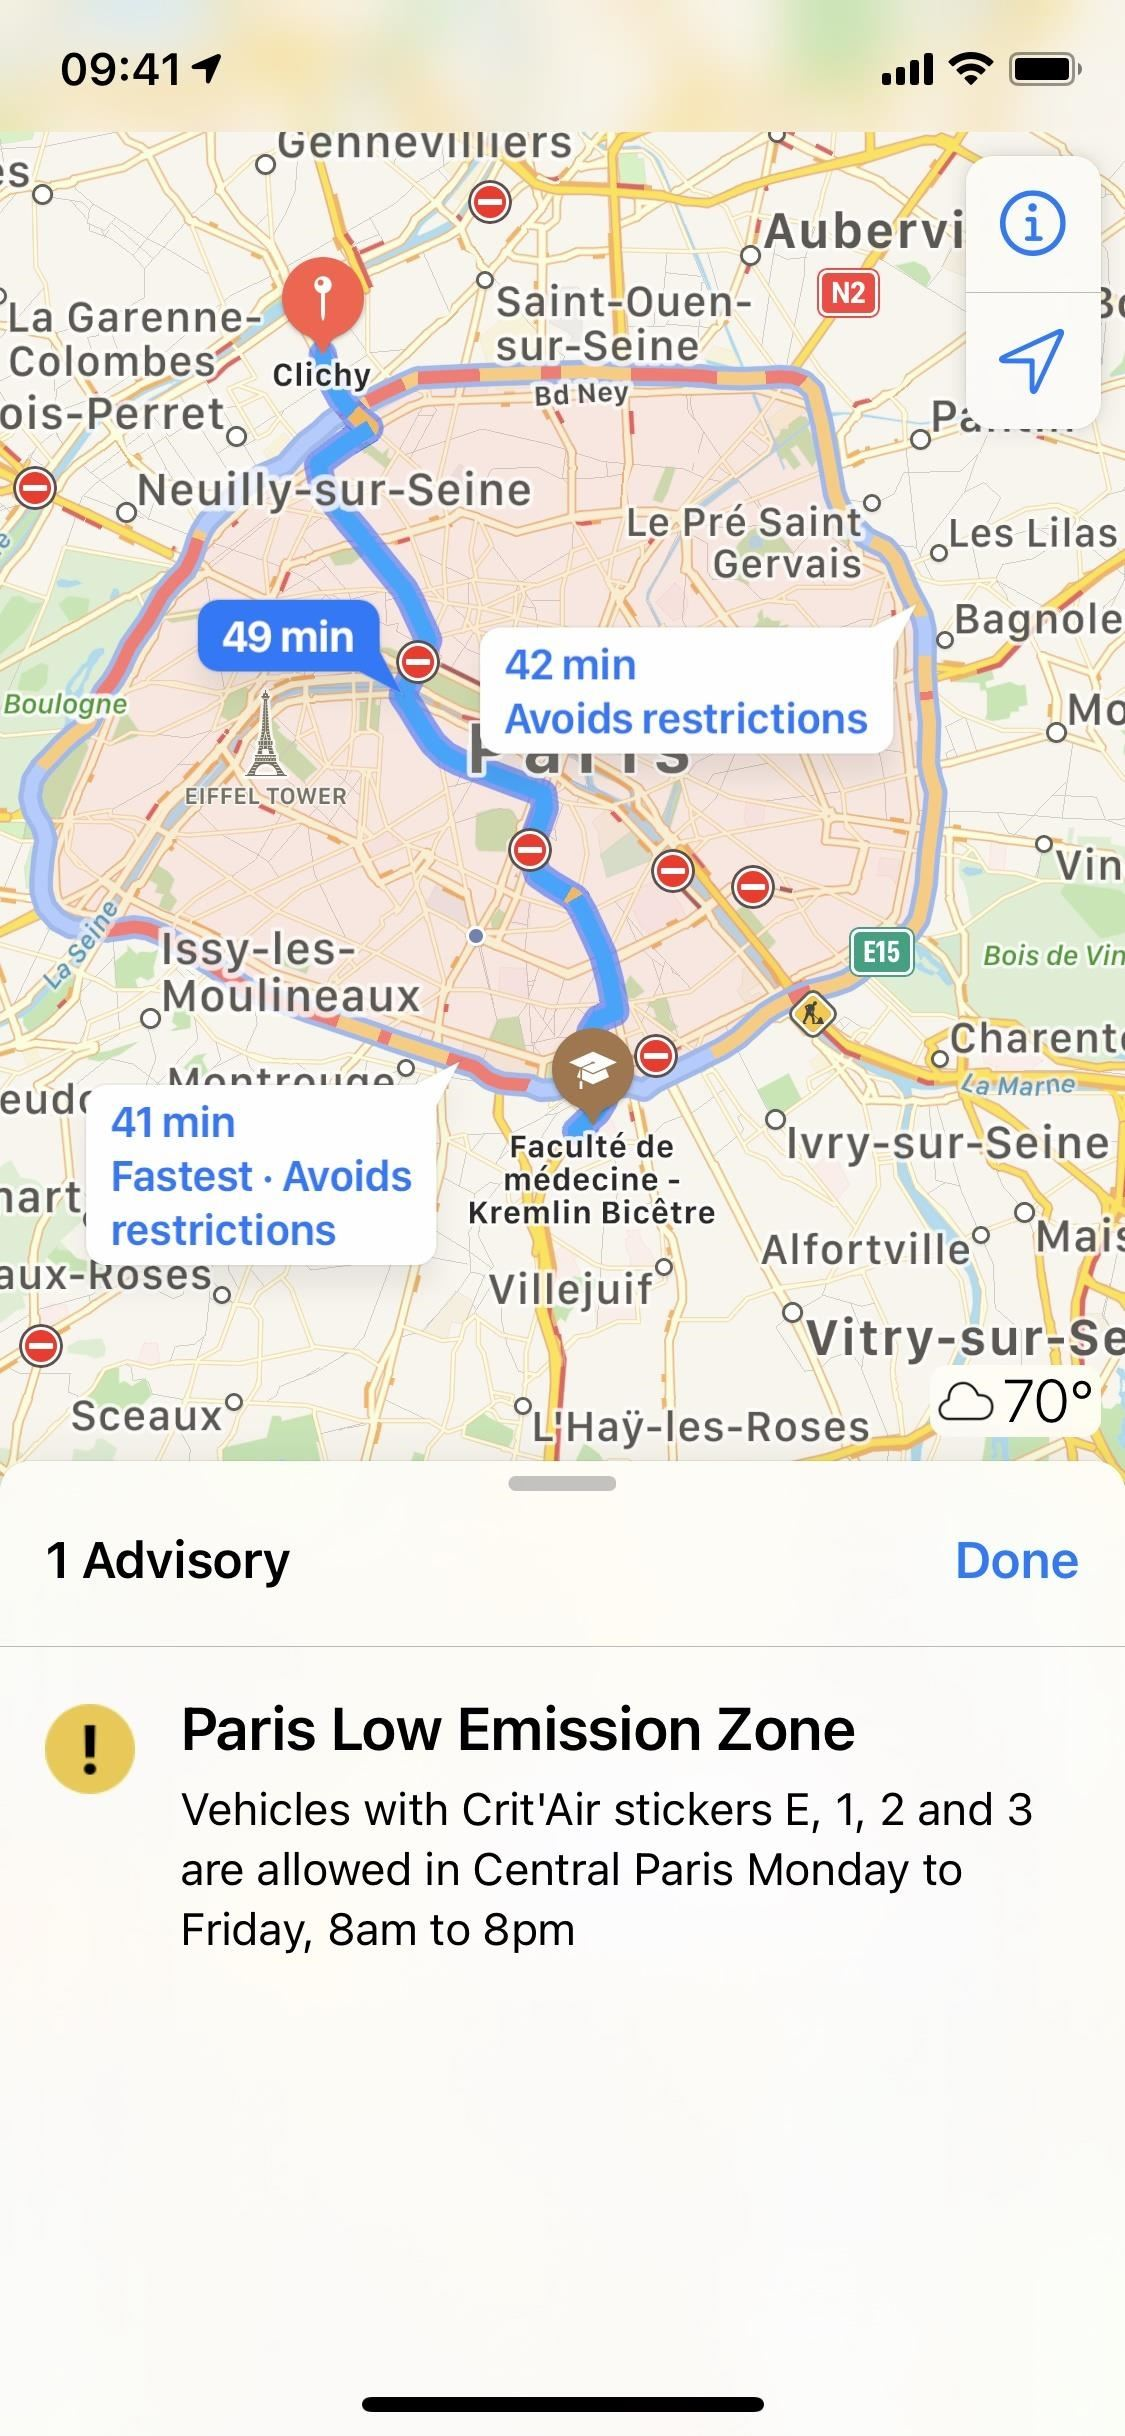 16 New Apple Maps Features for iPhone in iOS 14, Including Cycling Routes, New Widgets & City Guides